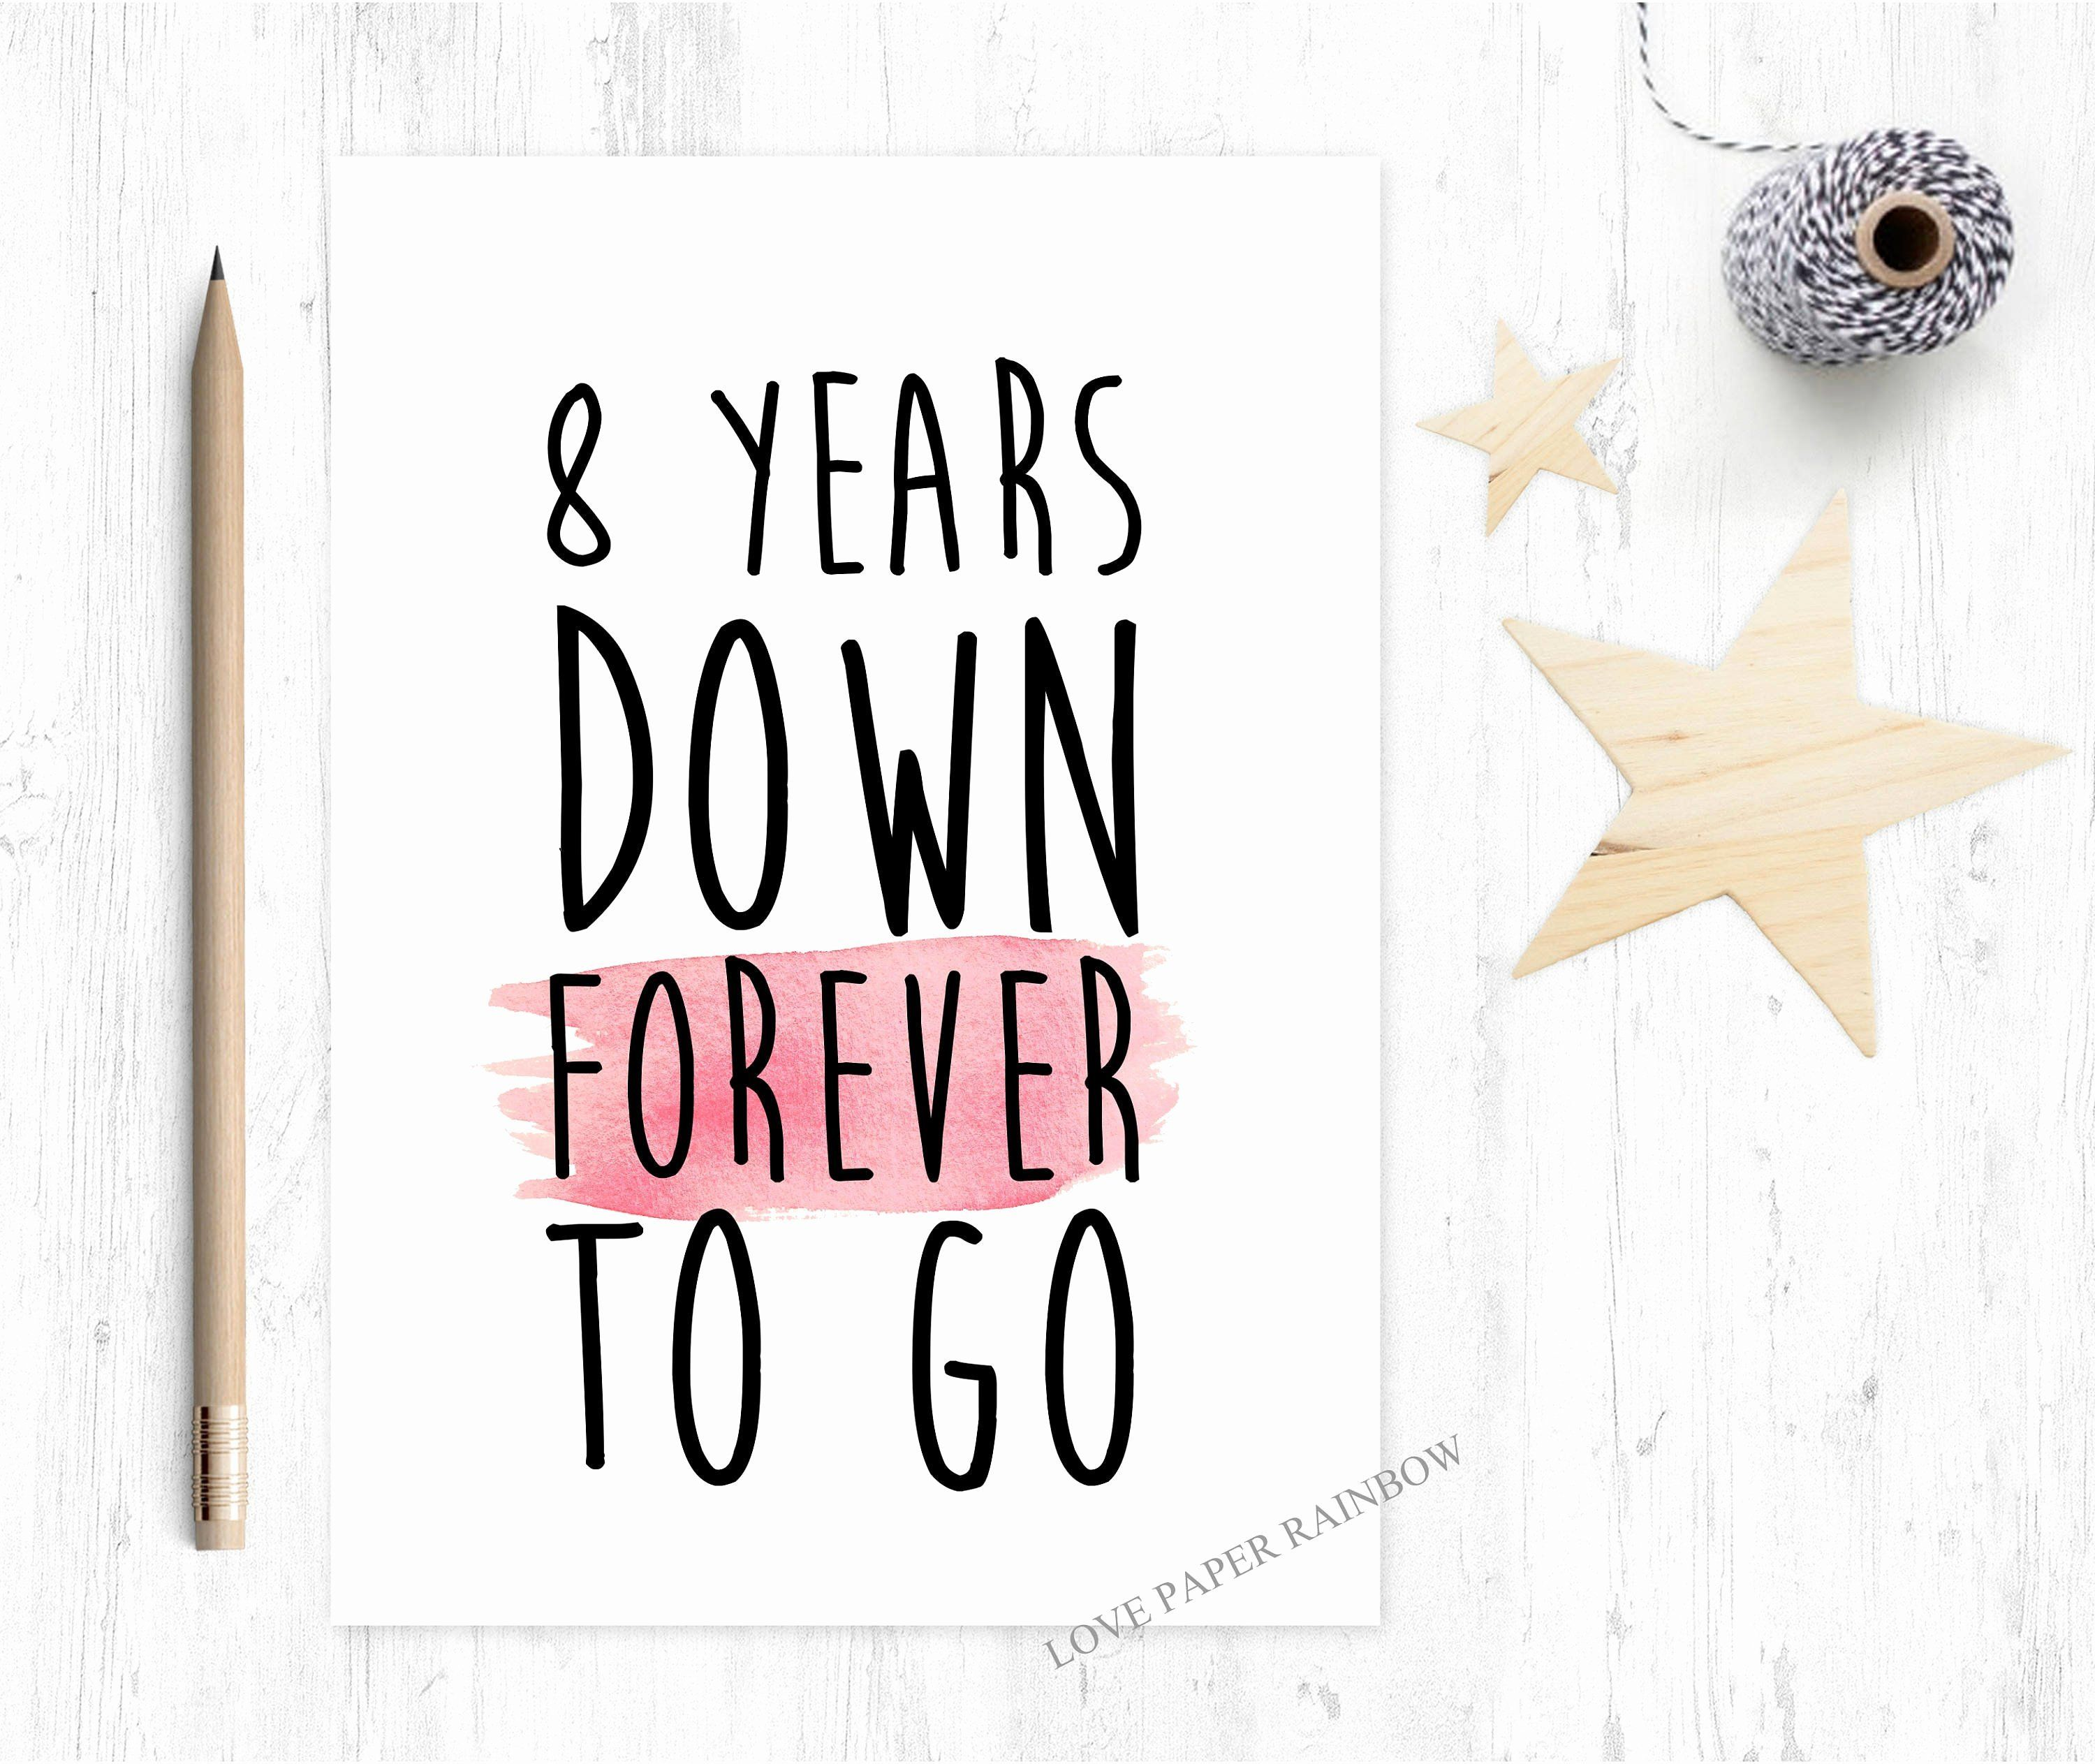 10 Year Anniversary Card in 2020 Personalized